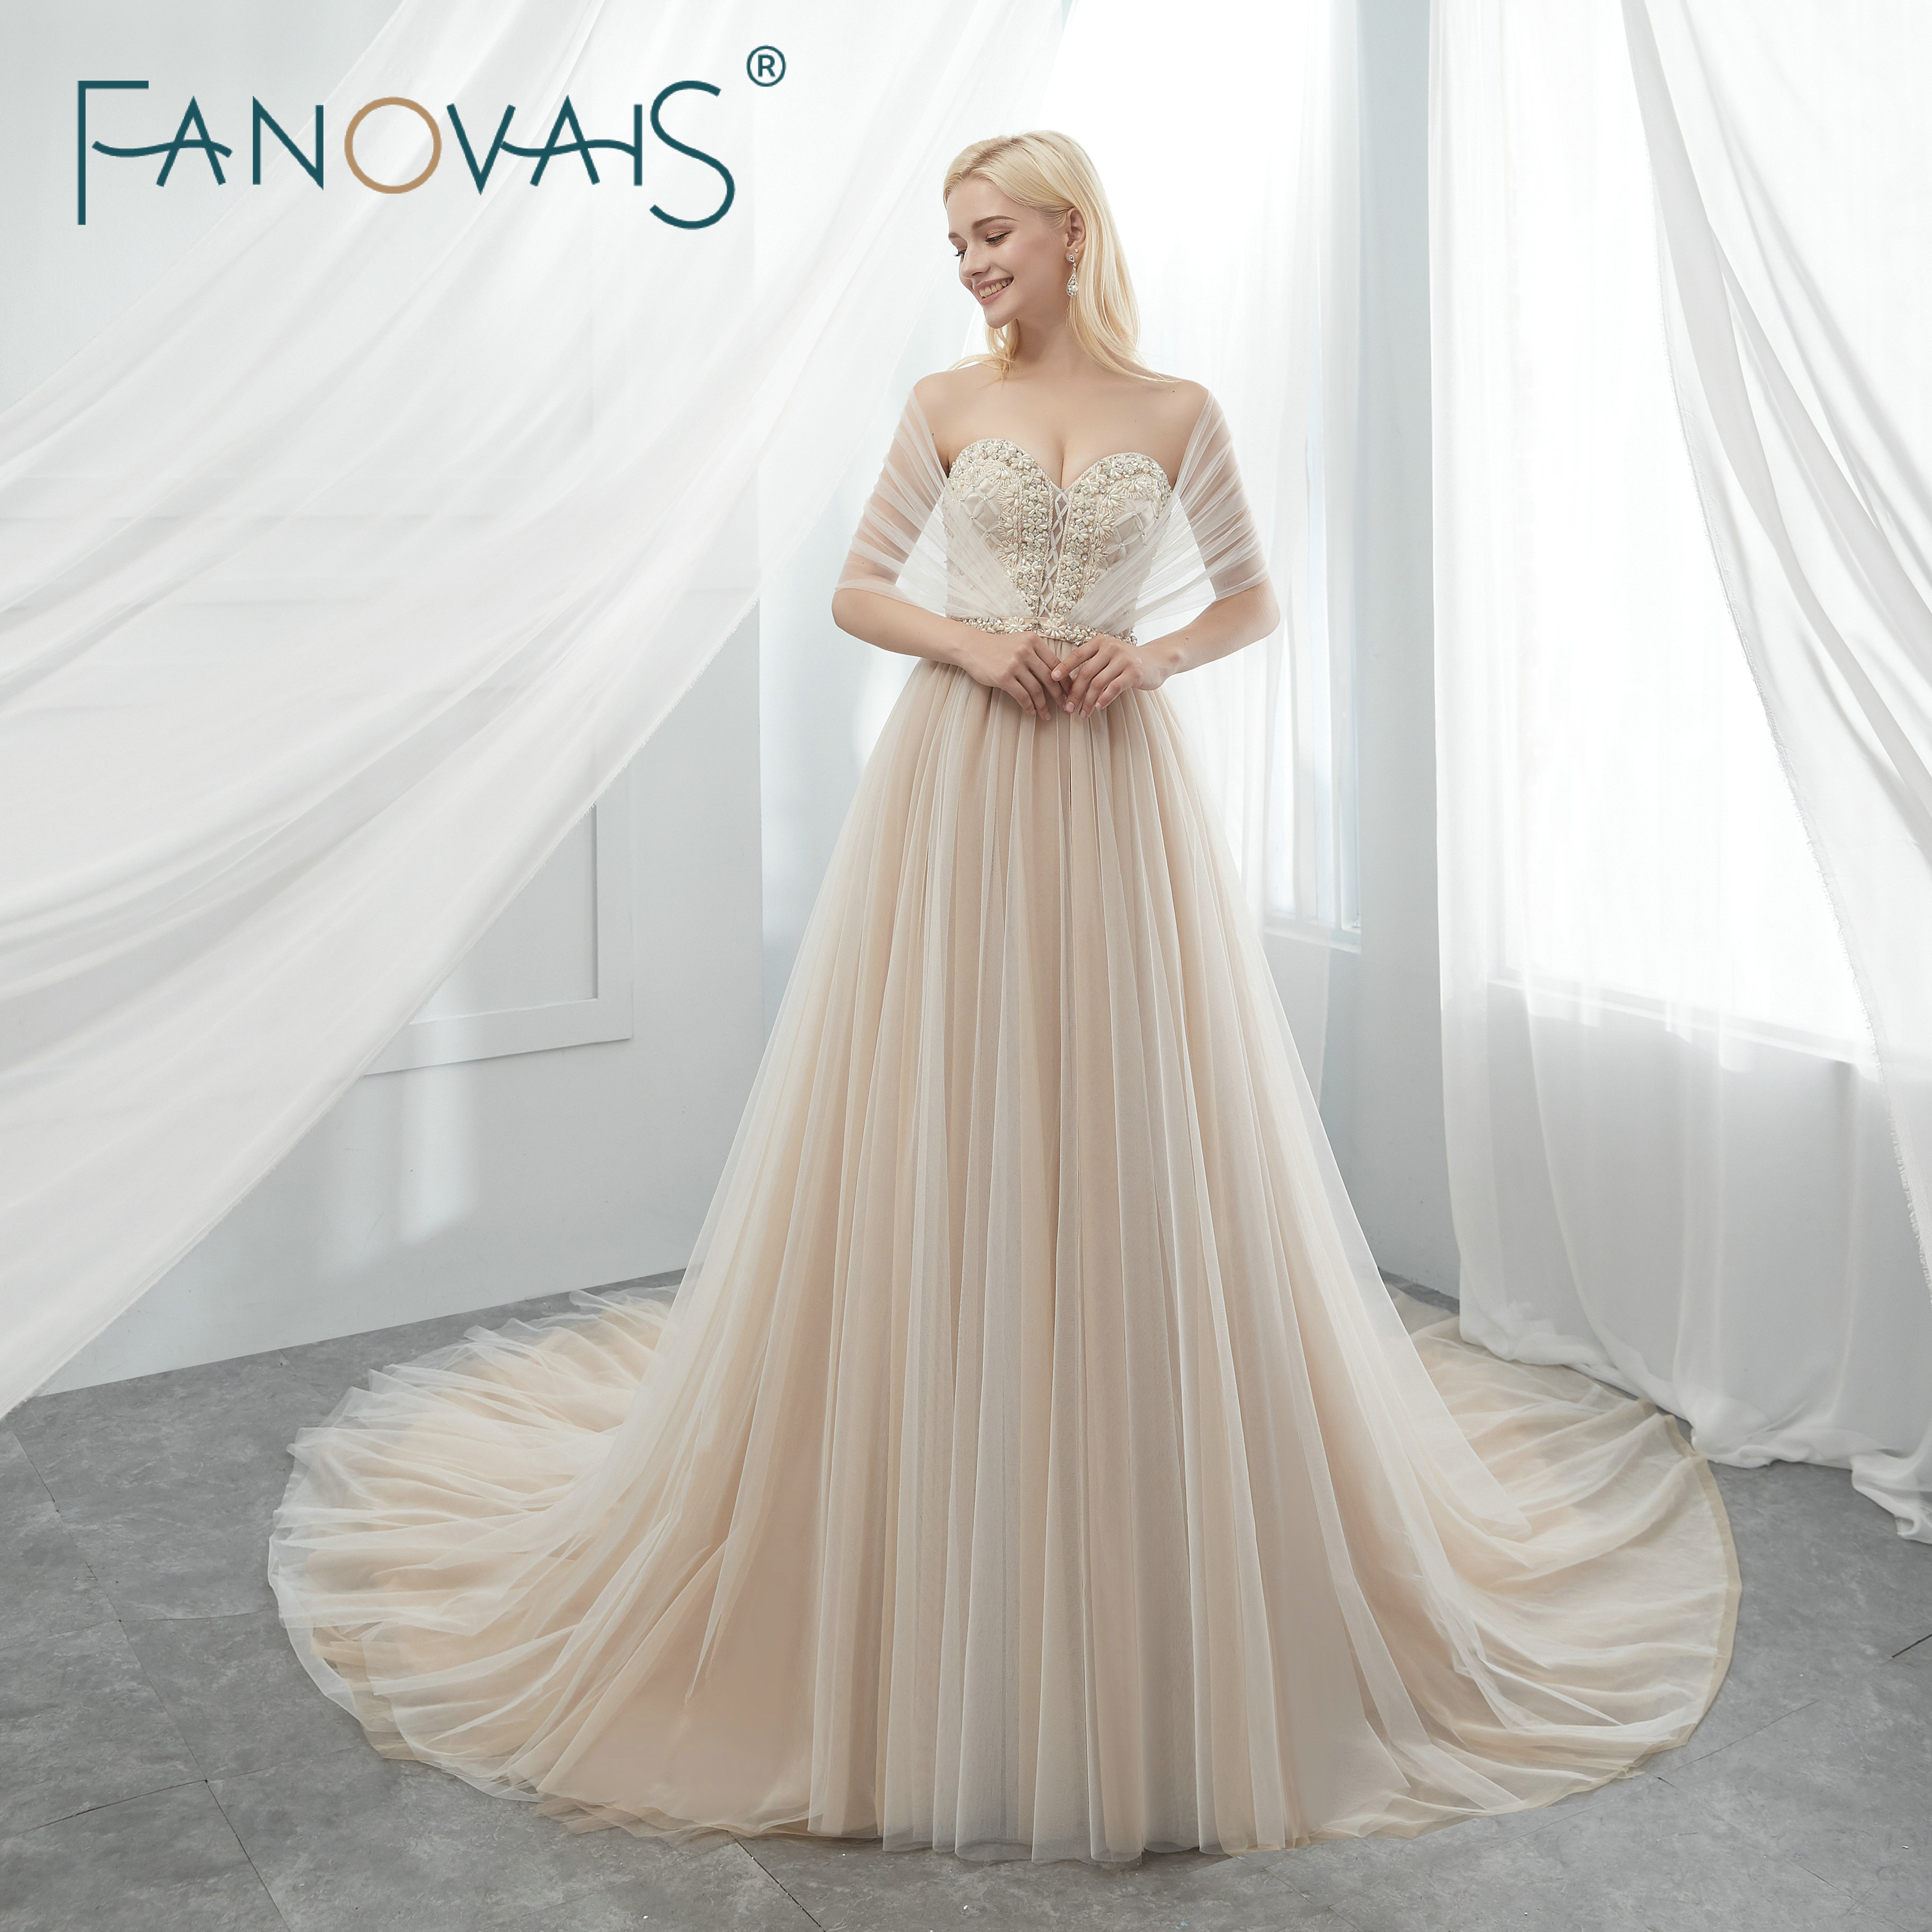 Tulle Wedding Dresses Beads BOHO Wedding Dress with Cape Champagne Bridal  Gowns Vestido De Novia Robe De Mariage 9e2aa3974b23